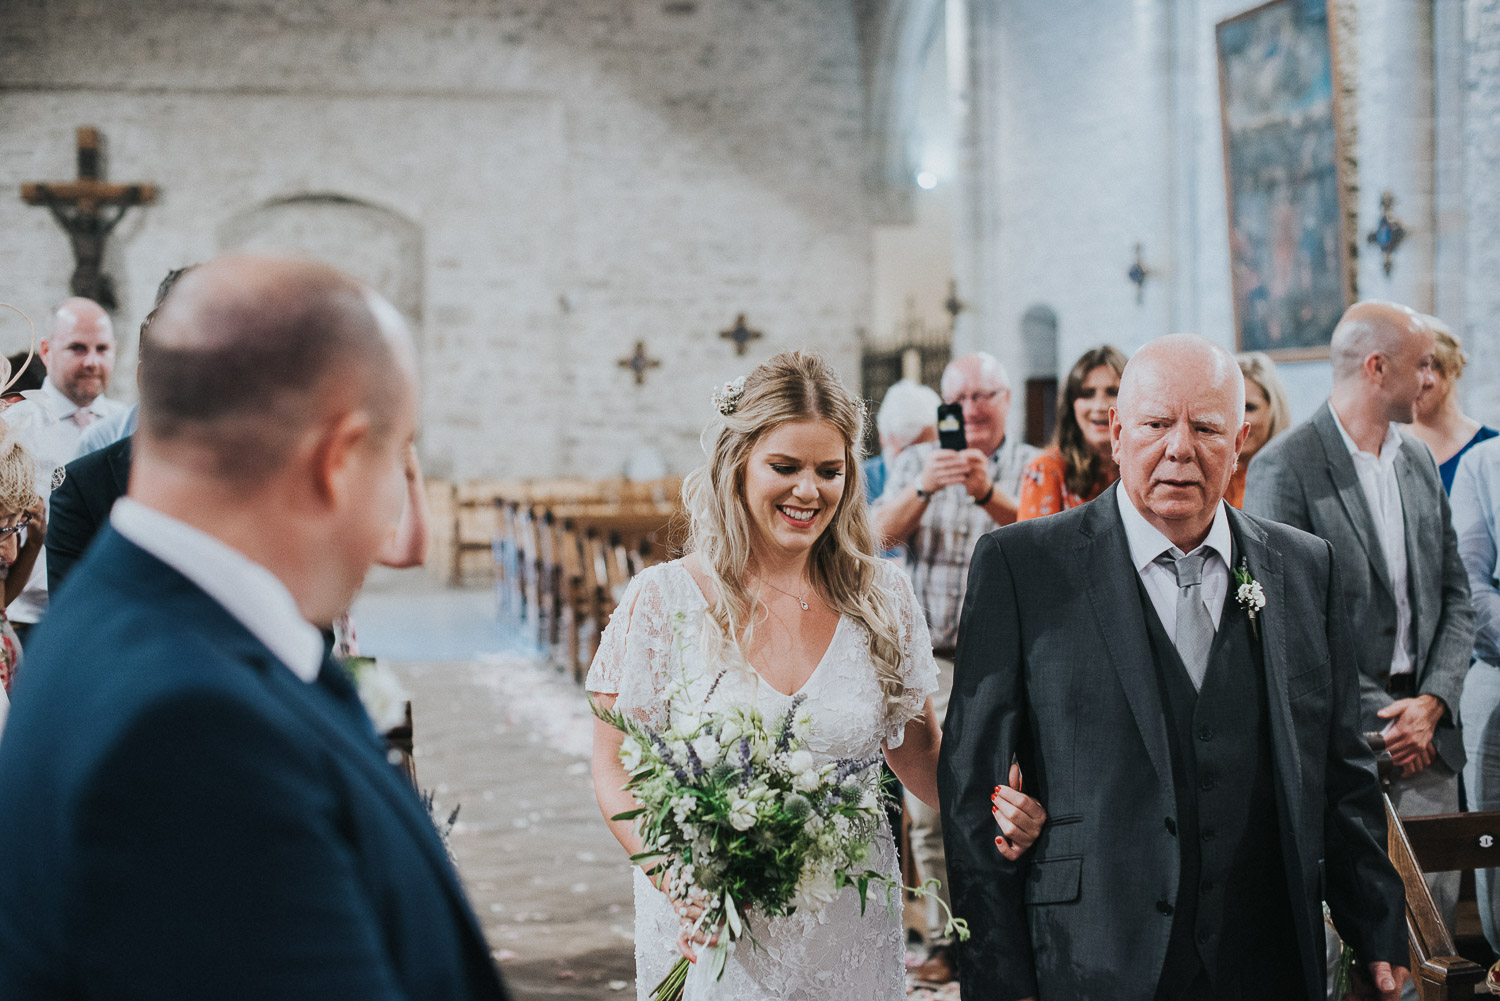 chateau_canet_carcassonne_wedding_katy_webb_photography_france_UK98